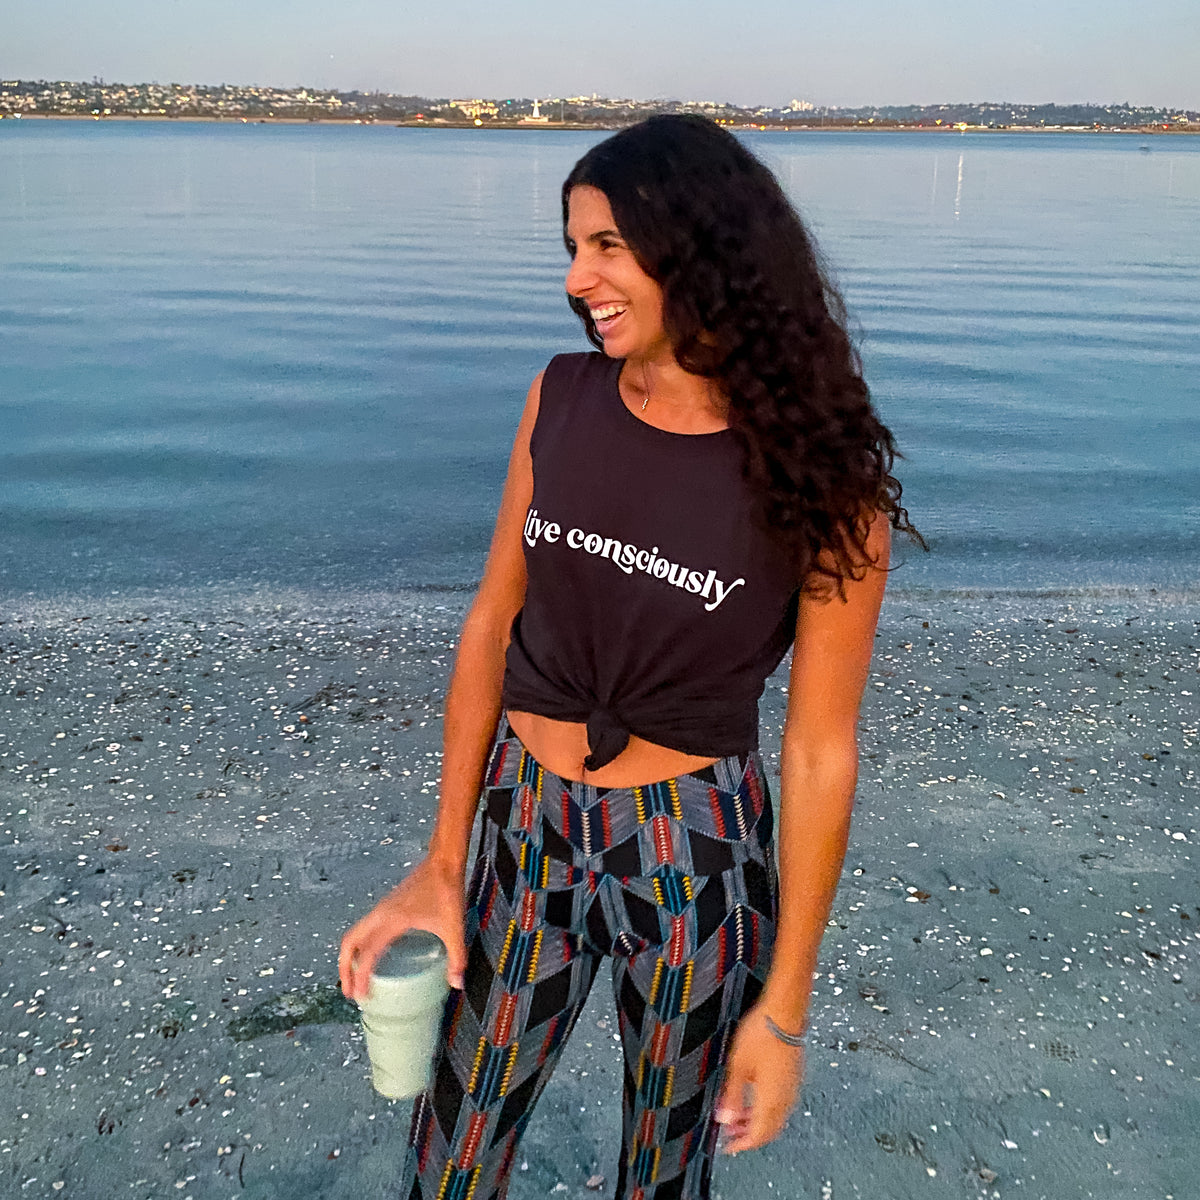 Live Consciously Women's Tank